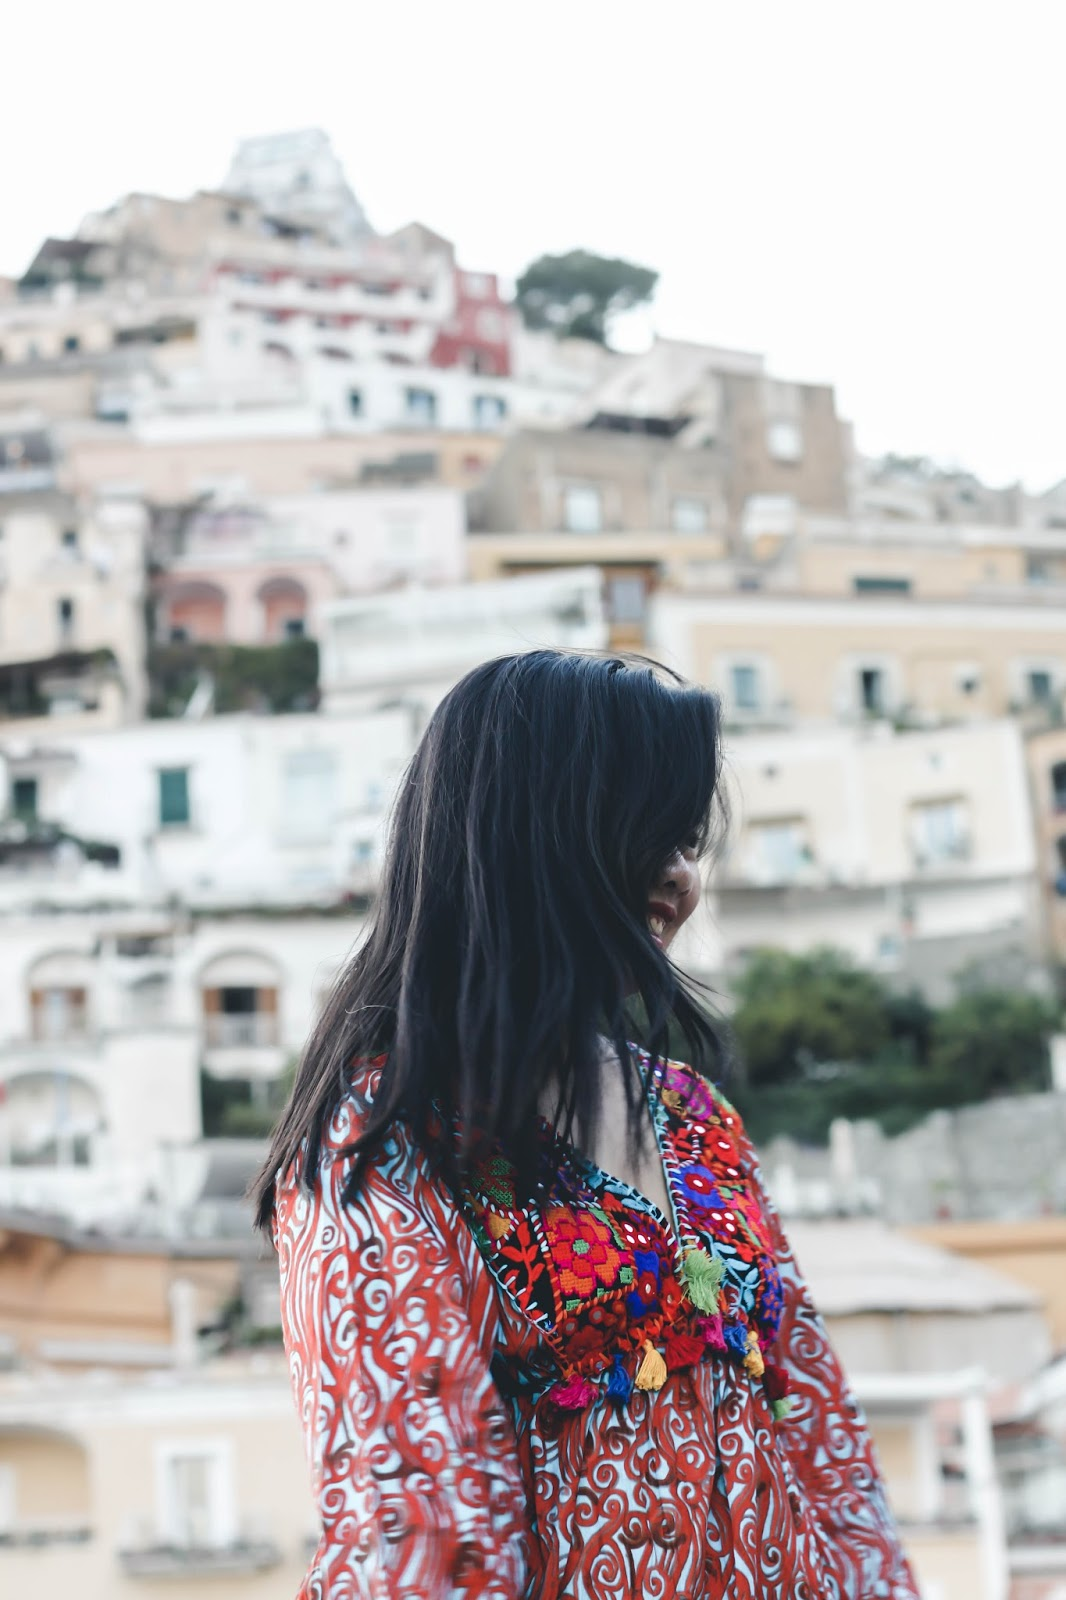 singapore blogger stylist fashion look book street style positano europe holiday summer beach outfit photography